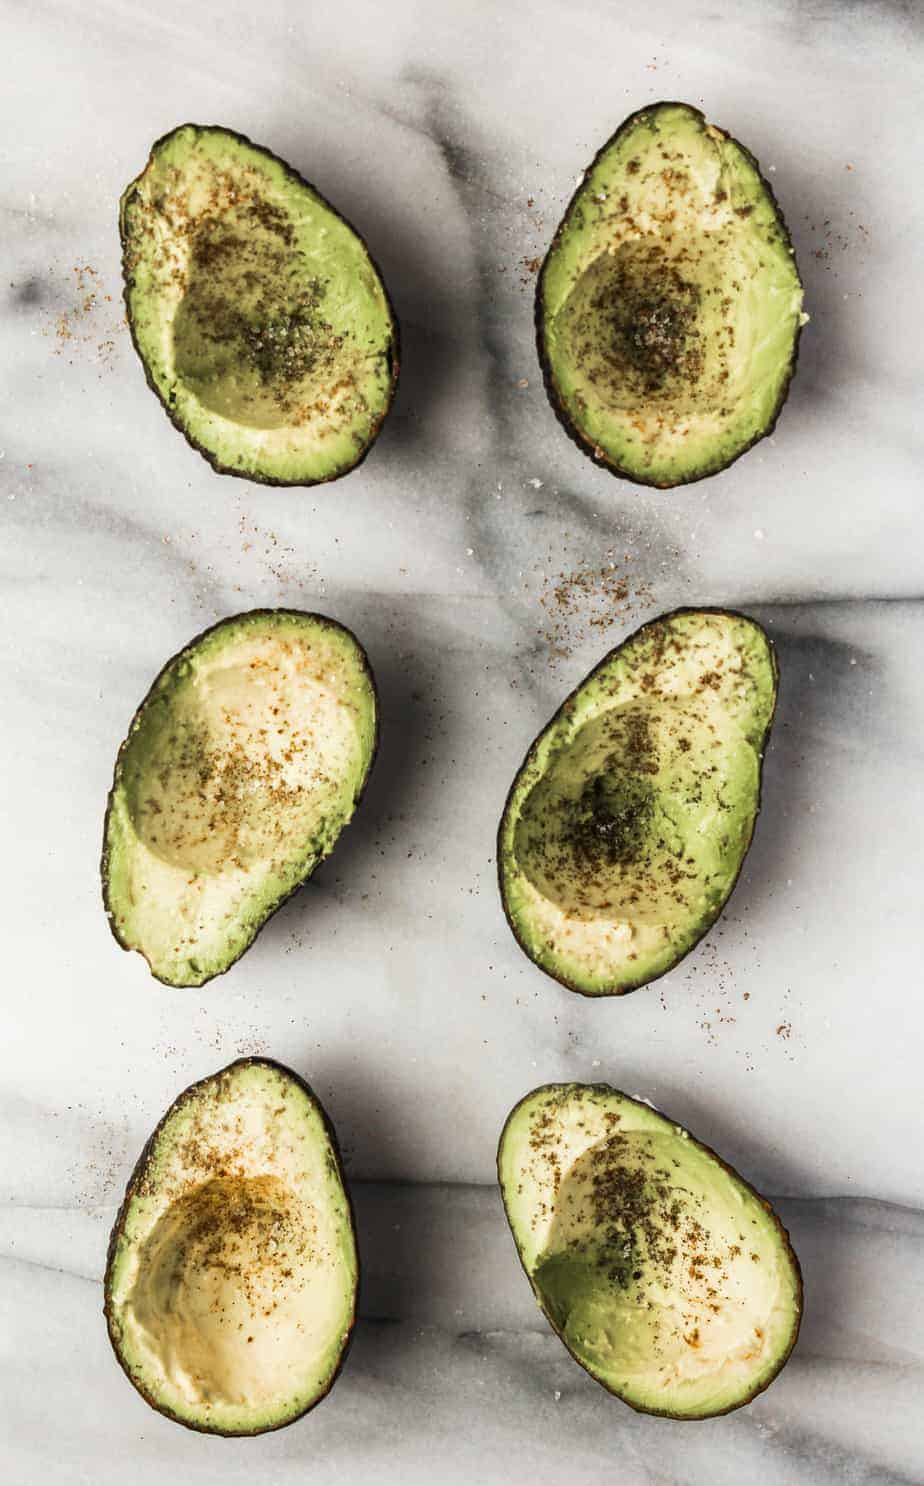 avocados on a marble board with the pits scooped out seasoned with salt and pepper